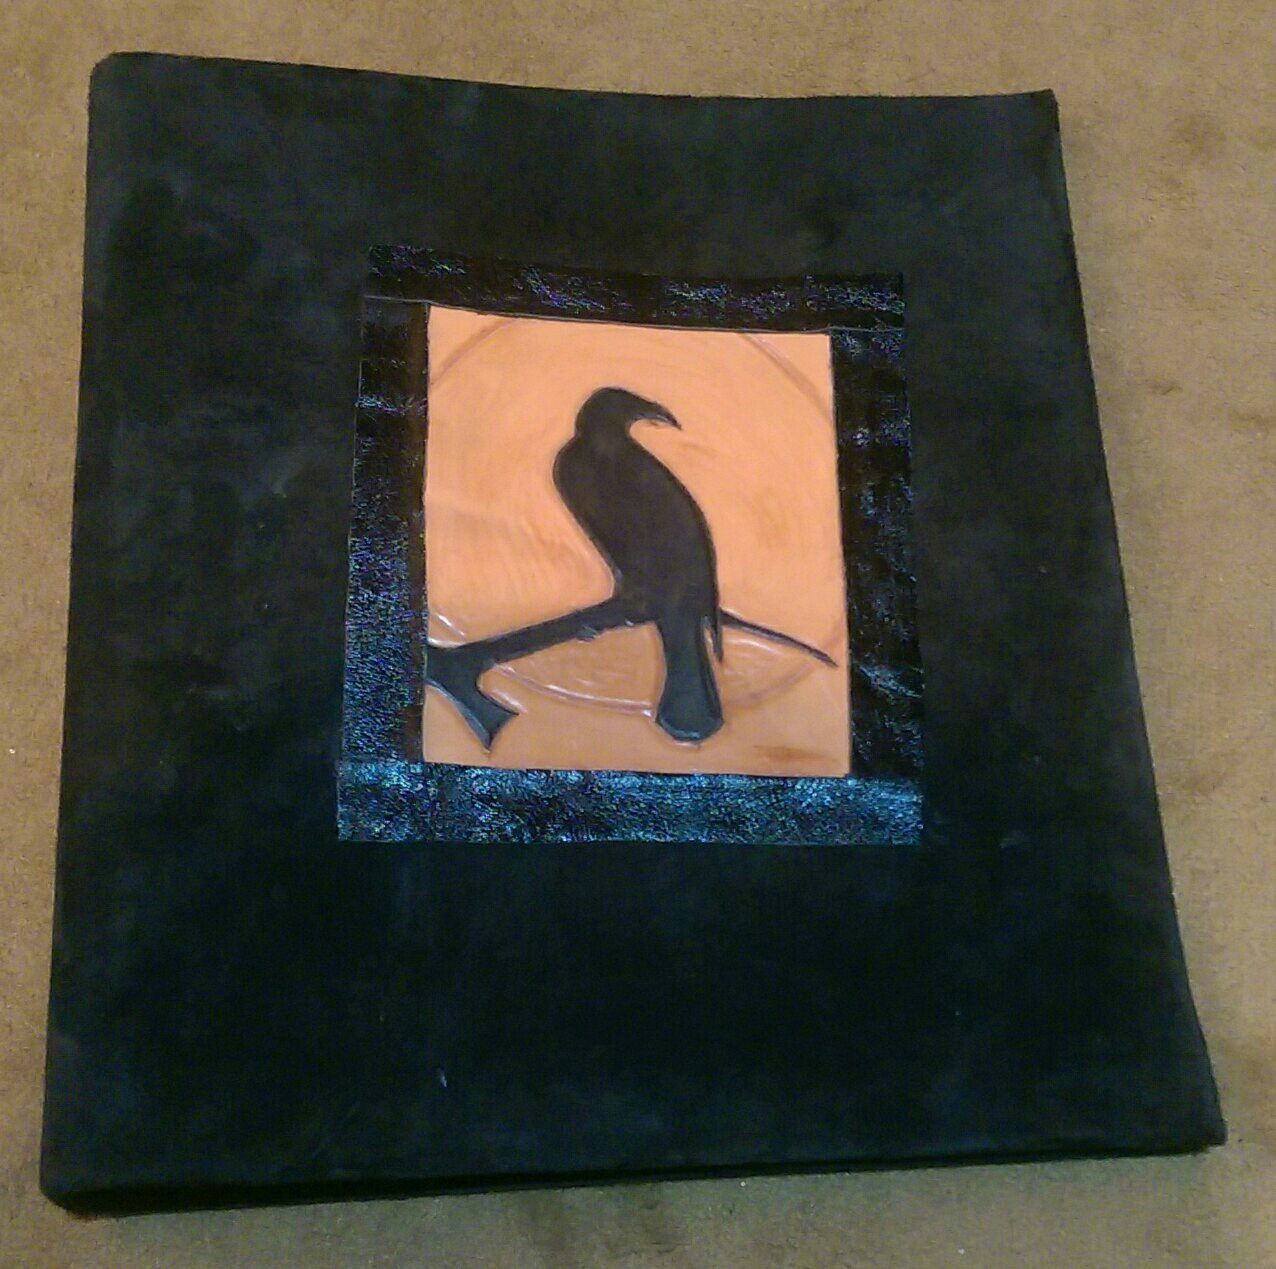 A folder for sheet music, covered in black sheep skin. The raven on the tree was carved and partially dyed.